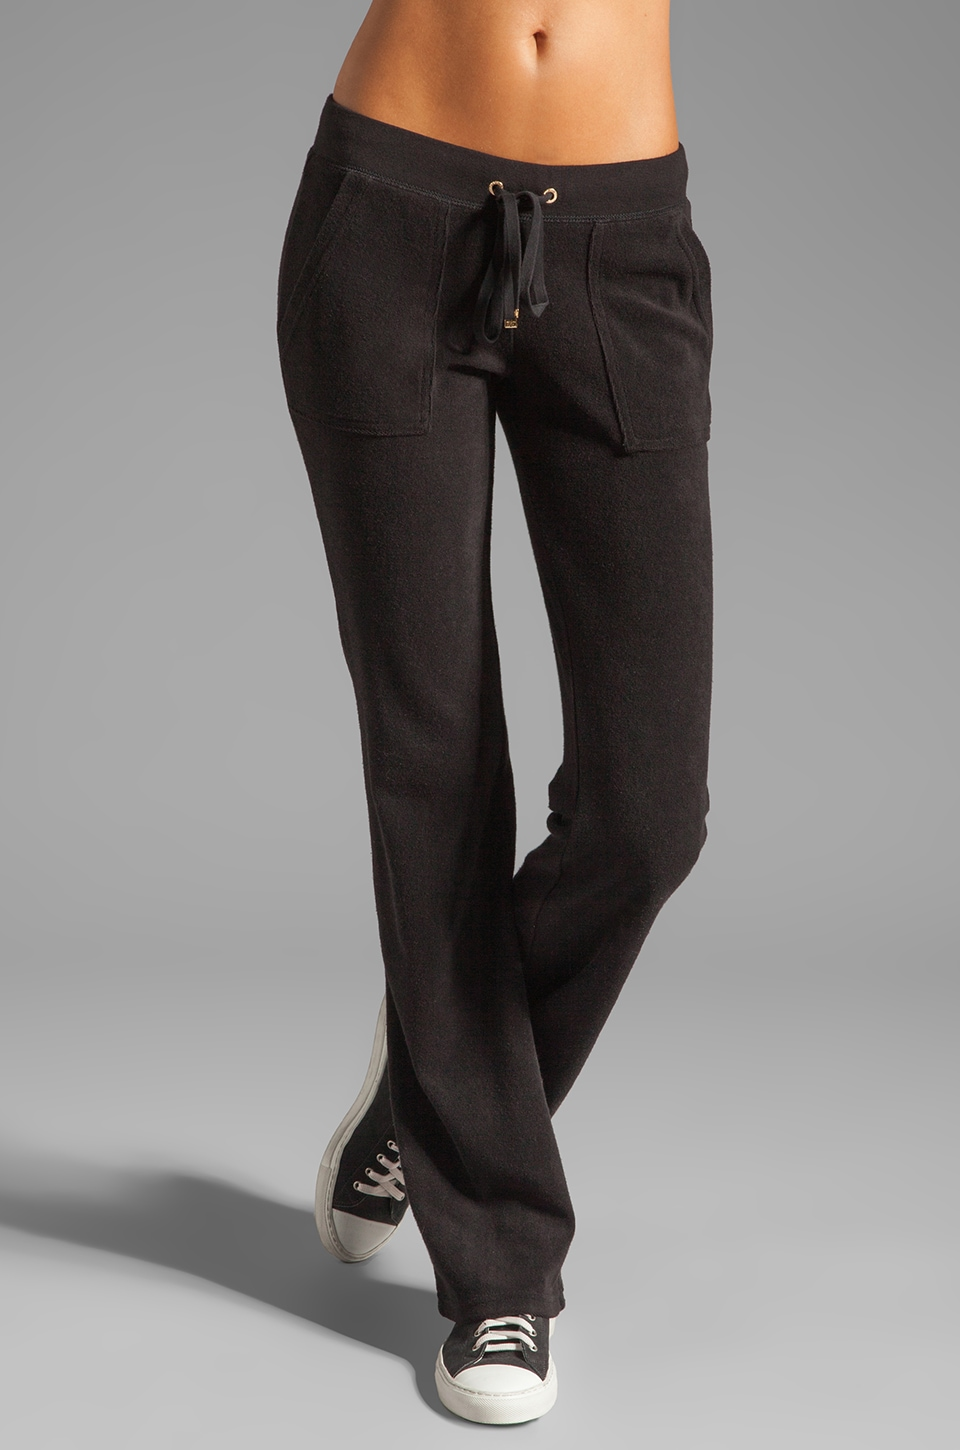 Juicy Couture Terry Snap Pocket Pant in Black